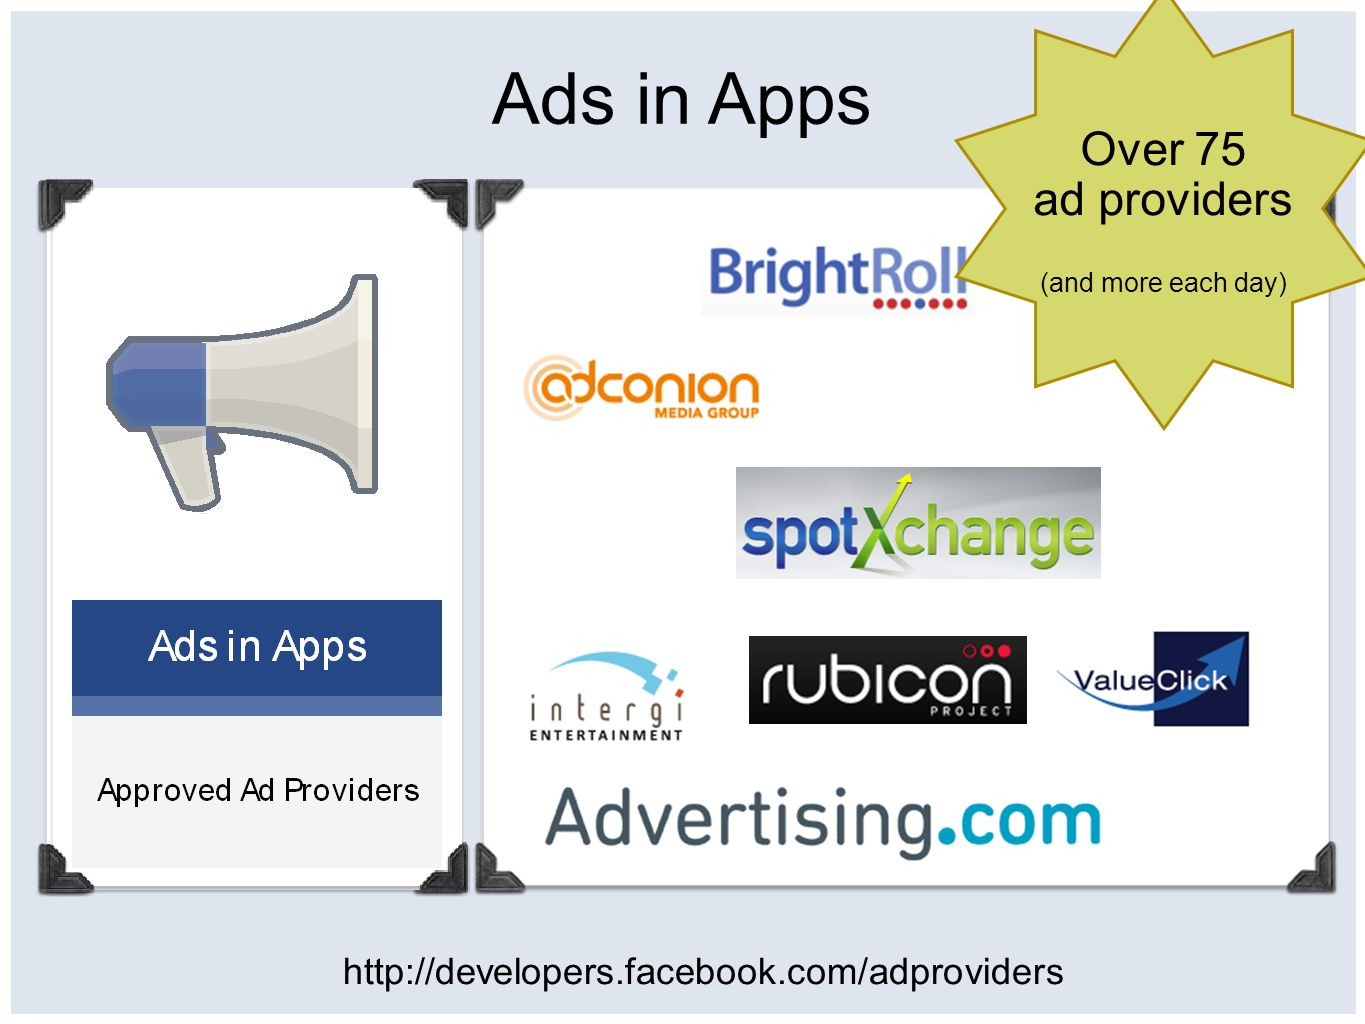 Ads in Apps http://developers.facebook.com/adproviders Over 75 ad providers (and more each day) Ads in Apps Approved Ad Providers